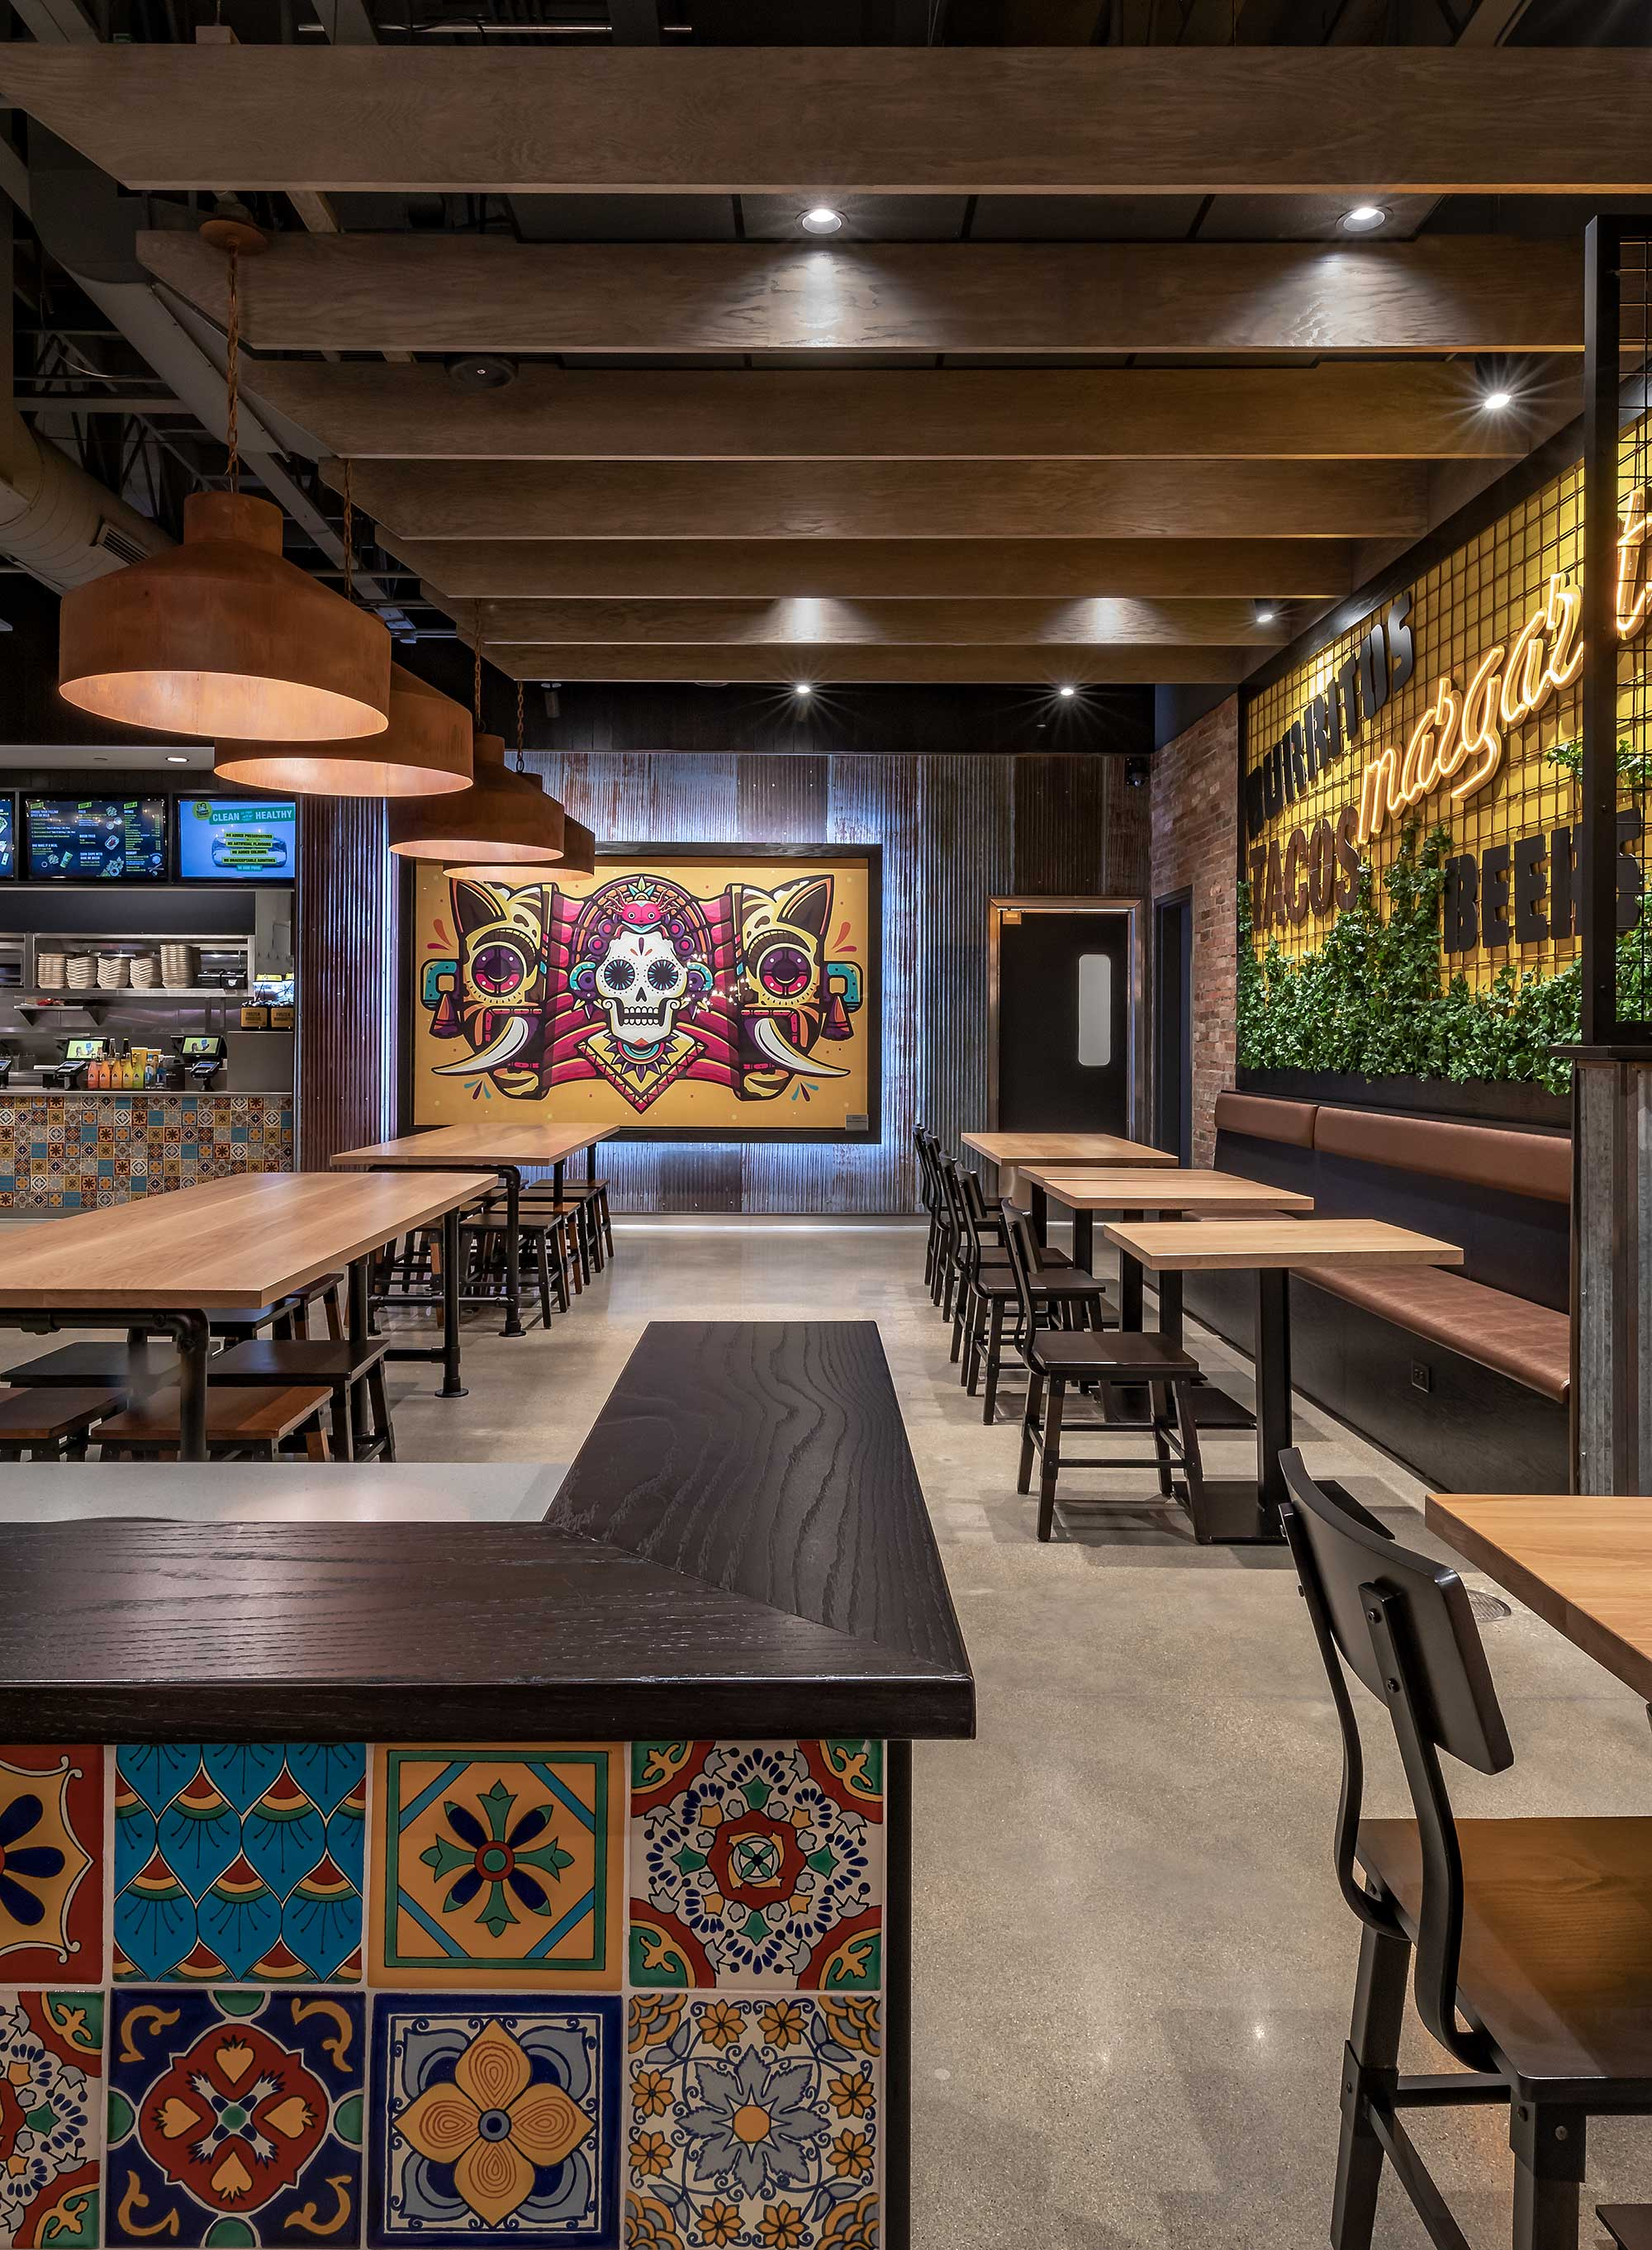 Restaurant interior with Day of the Dead wall art